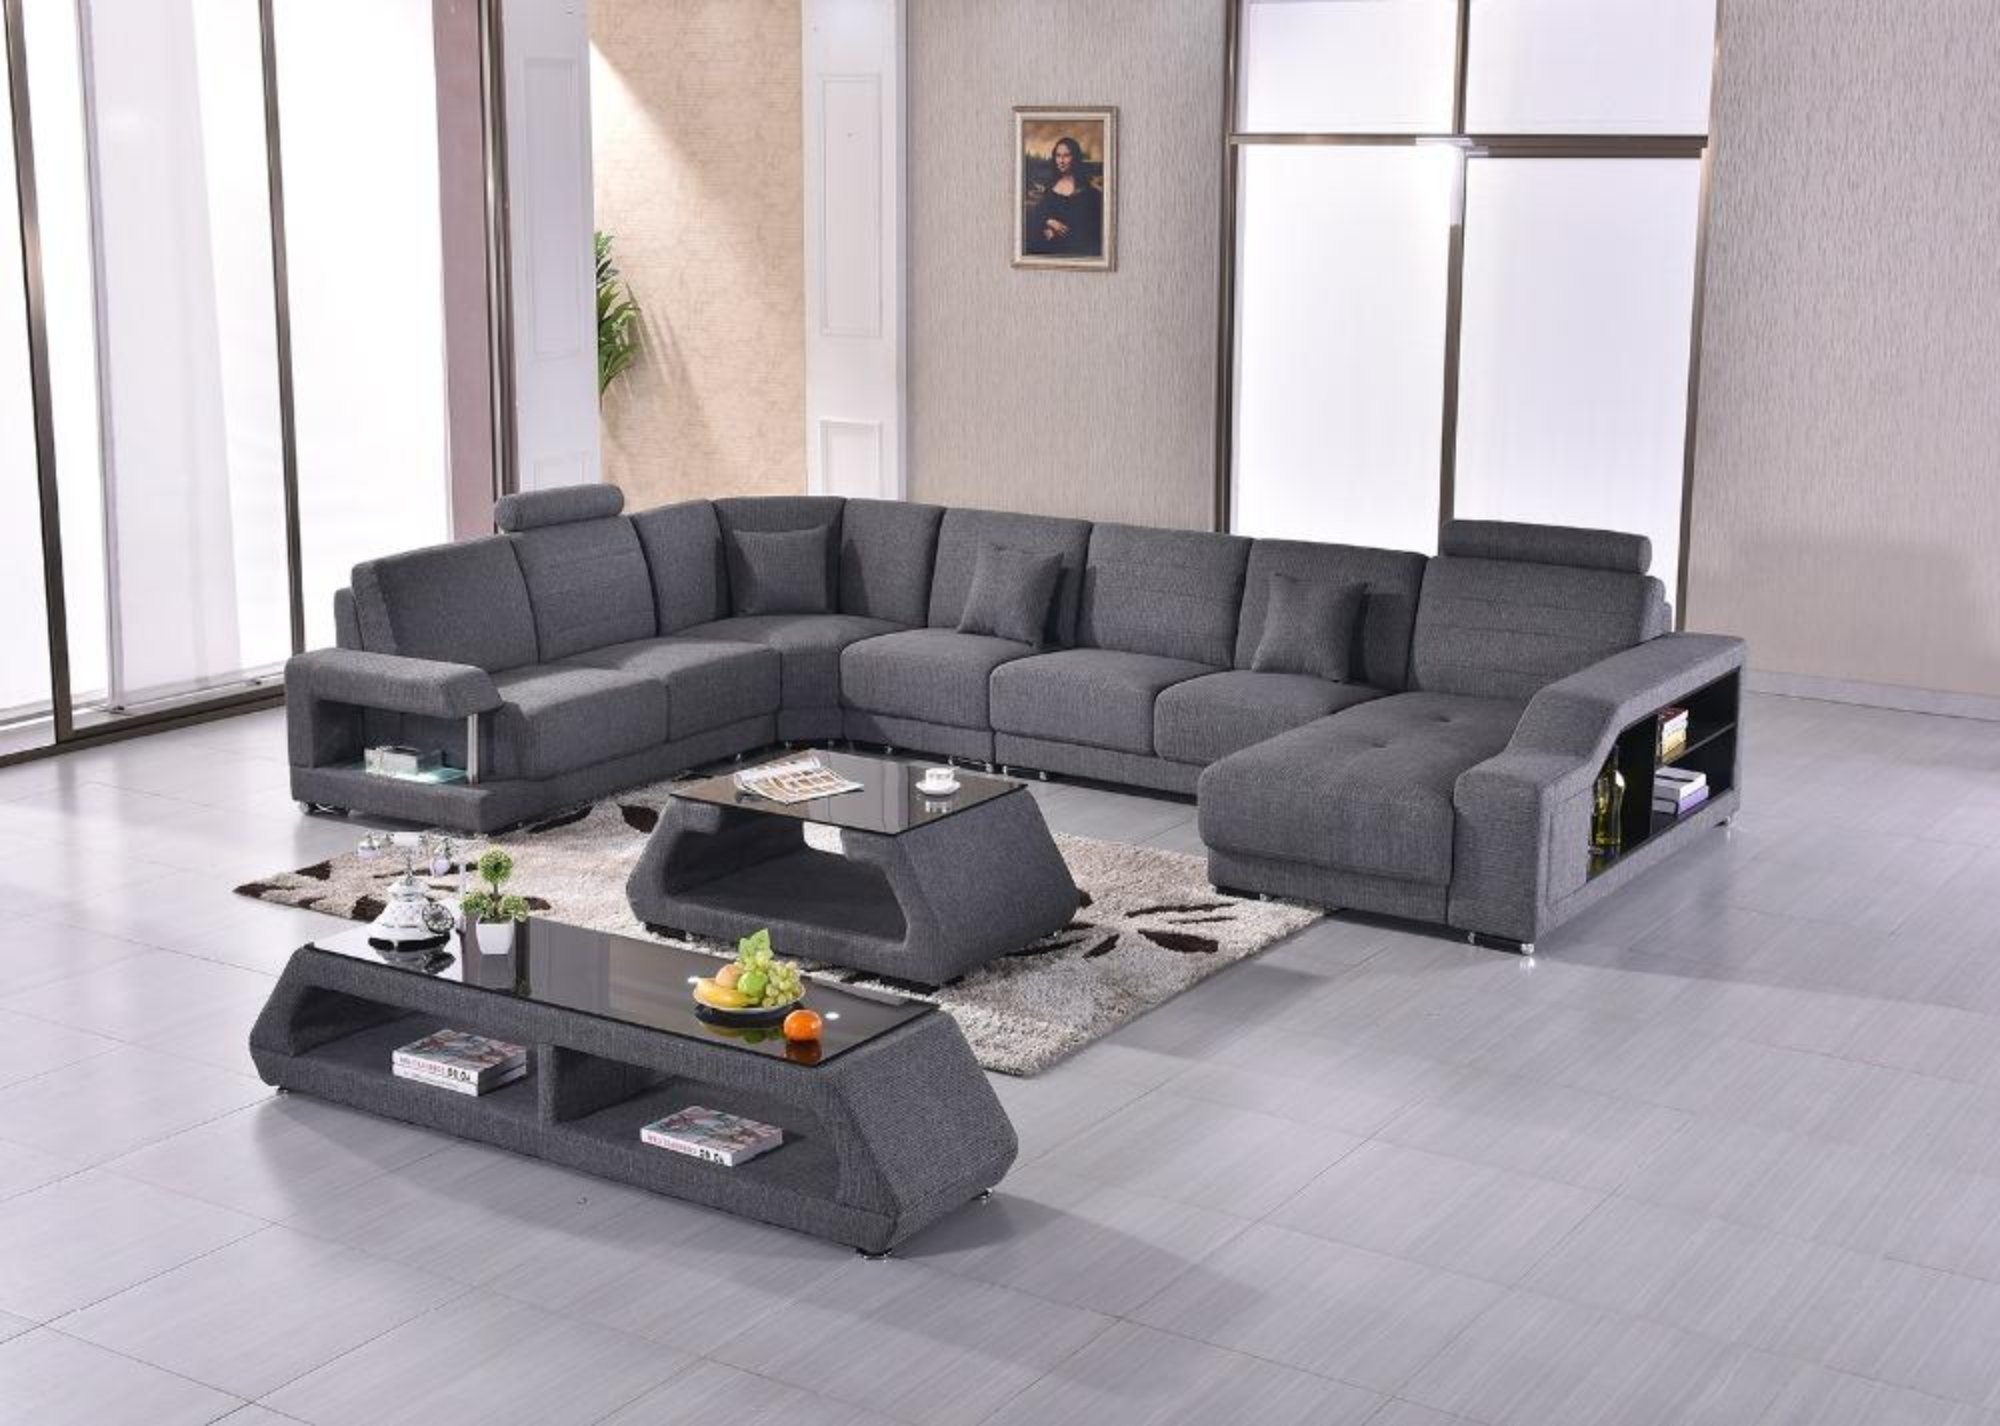 Fabric Modern Sofa Set Armchair Sectional Sofa U Shape ...